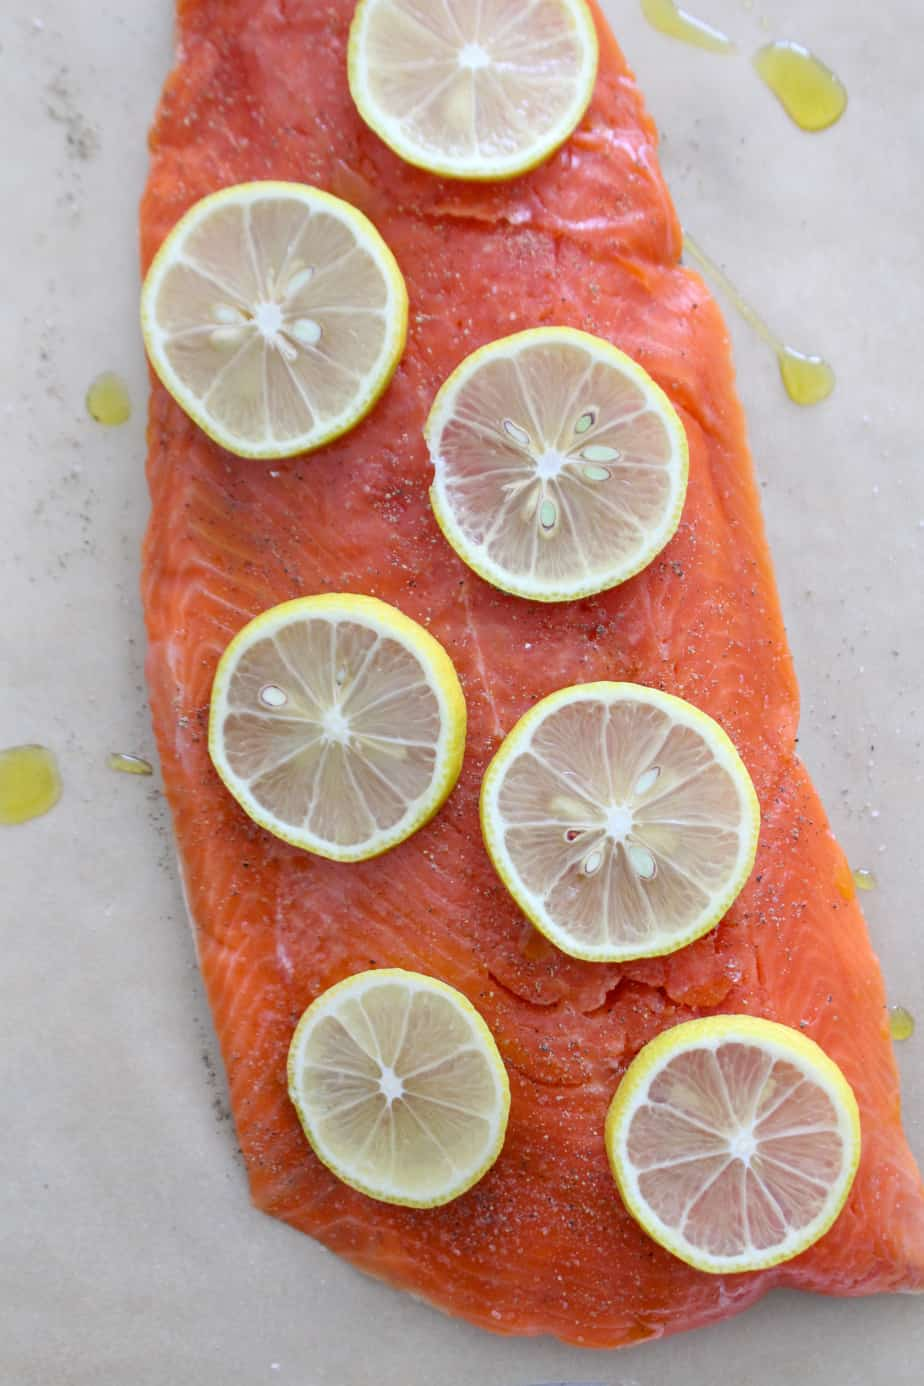 How to Roast a Whole Salmon Fillet | Frugal Nutrition